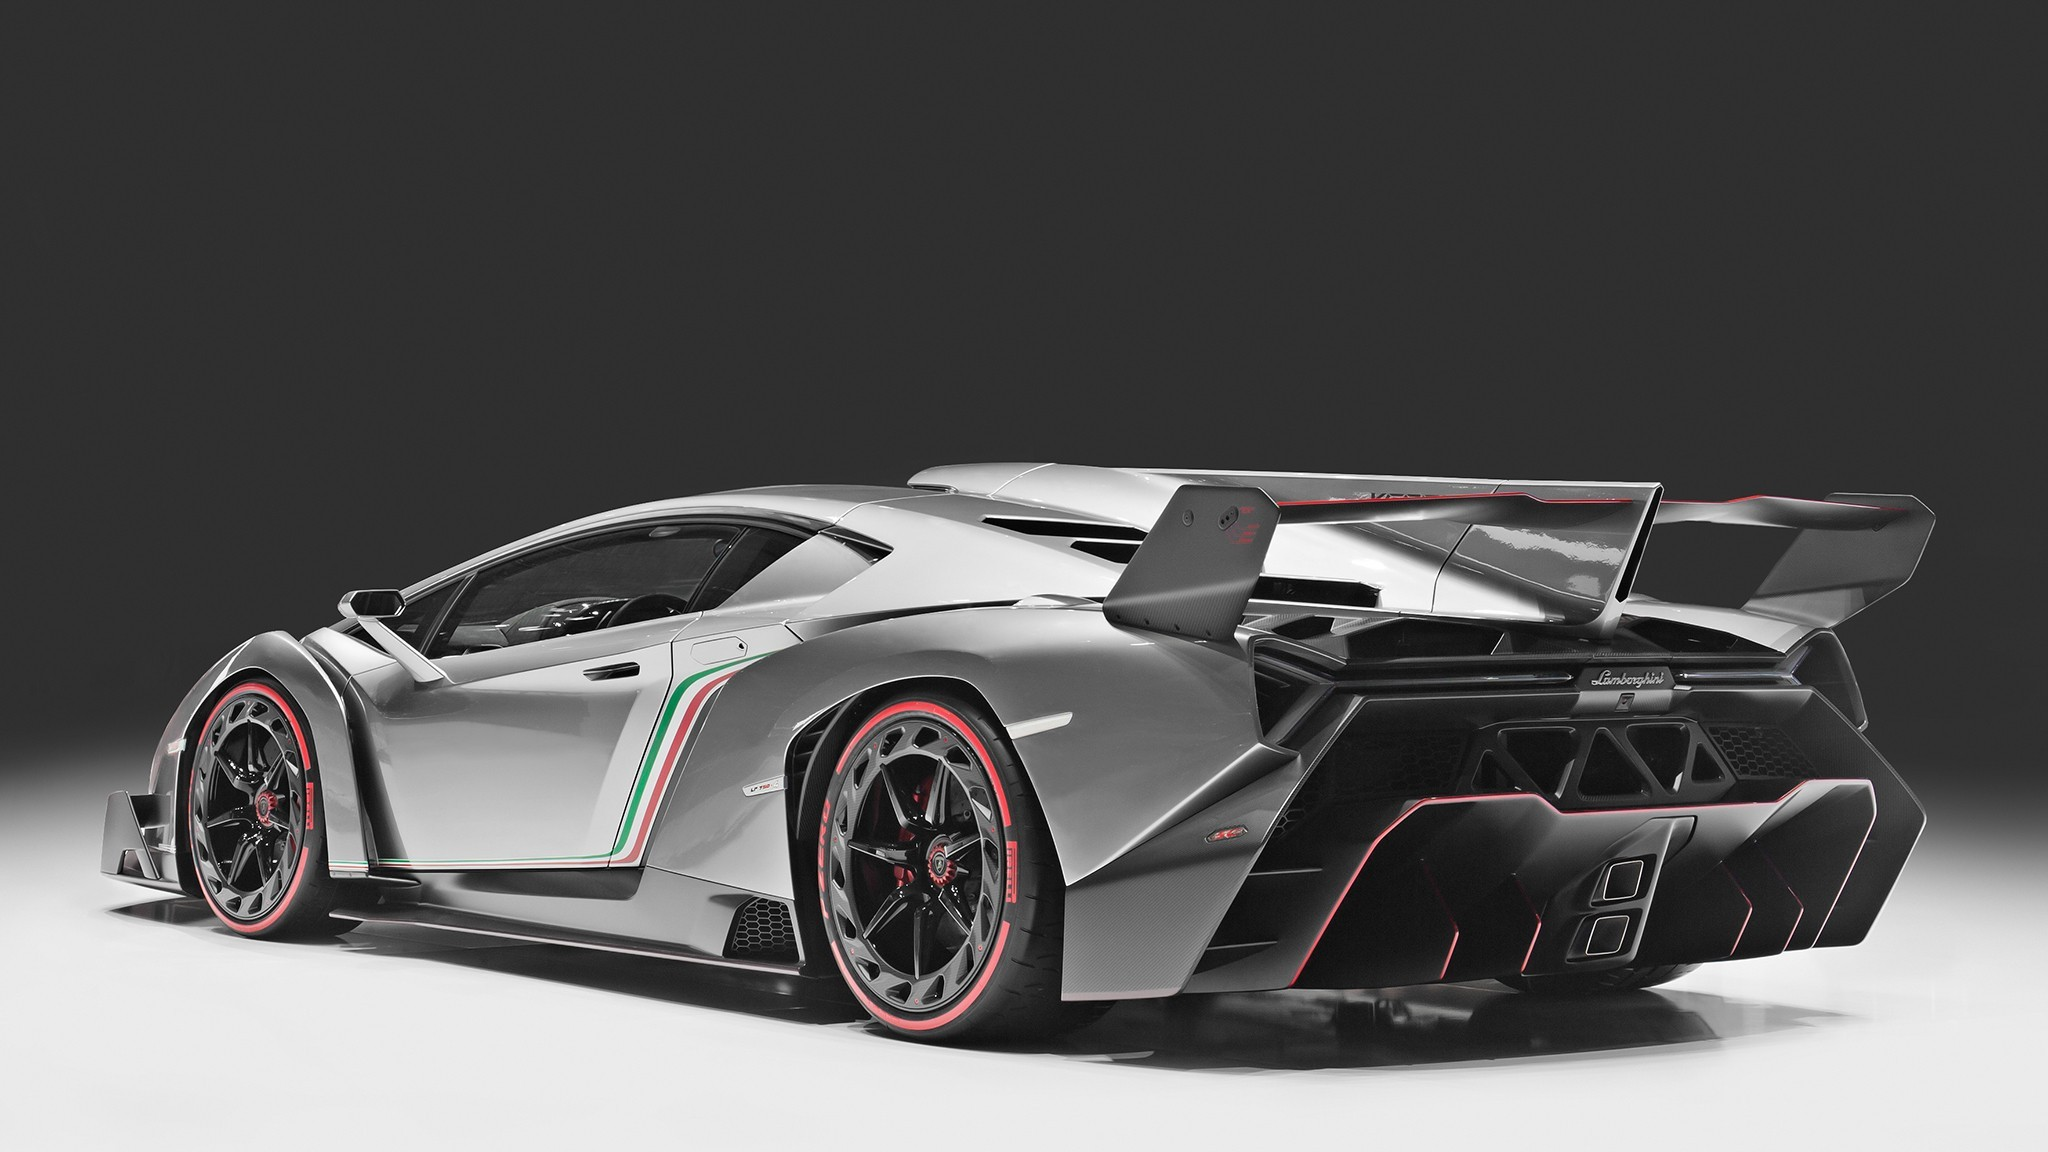 Cars Lamborghini Super Veneno Wallpaper Allwallpaperin 14501